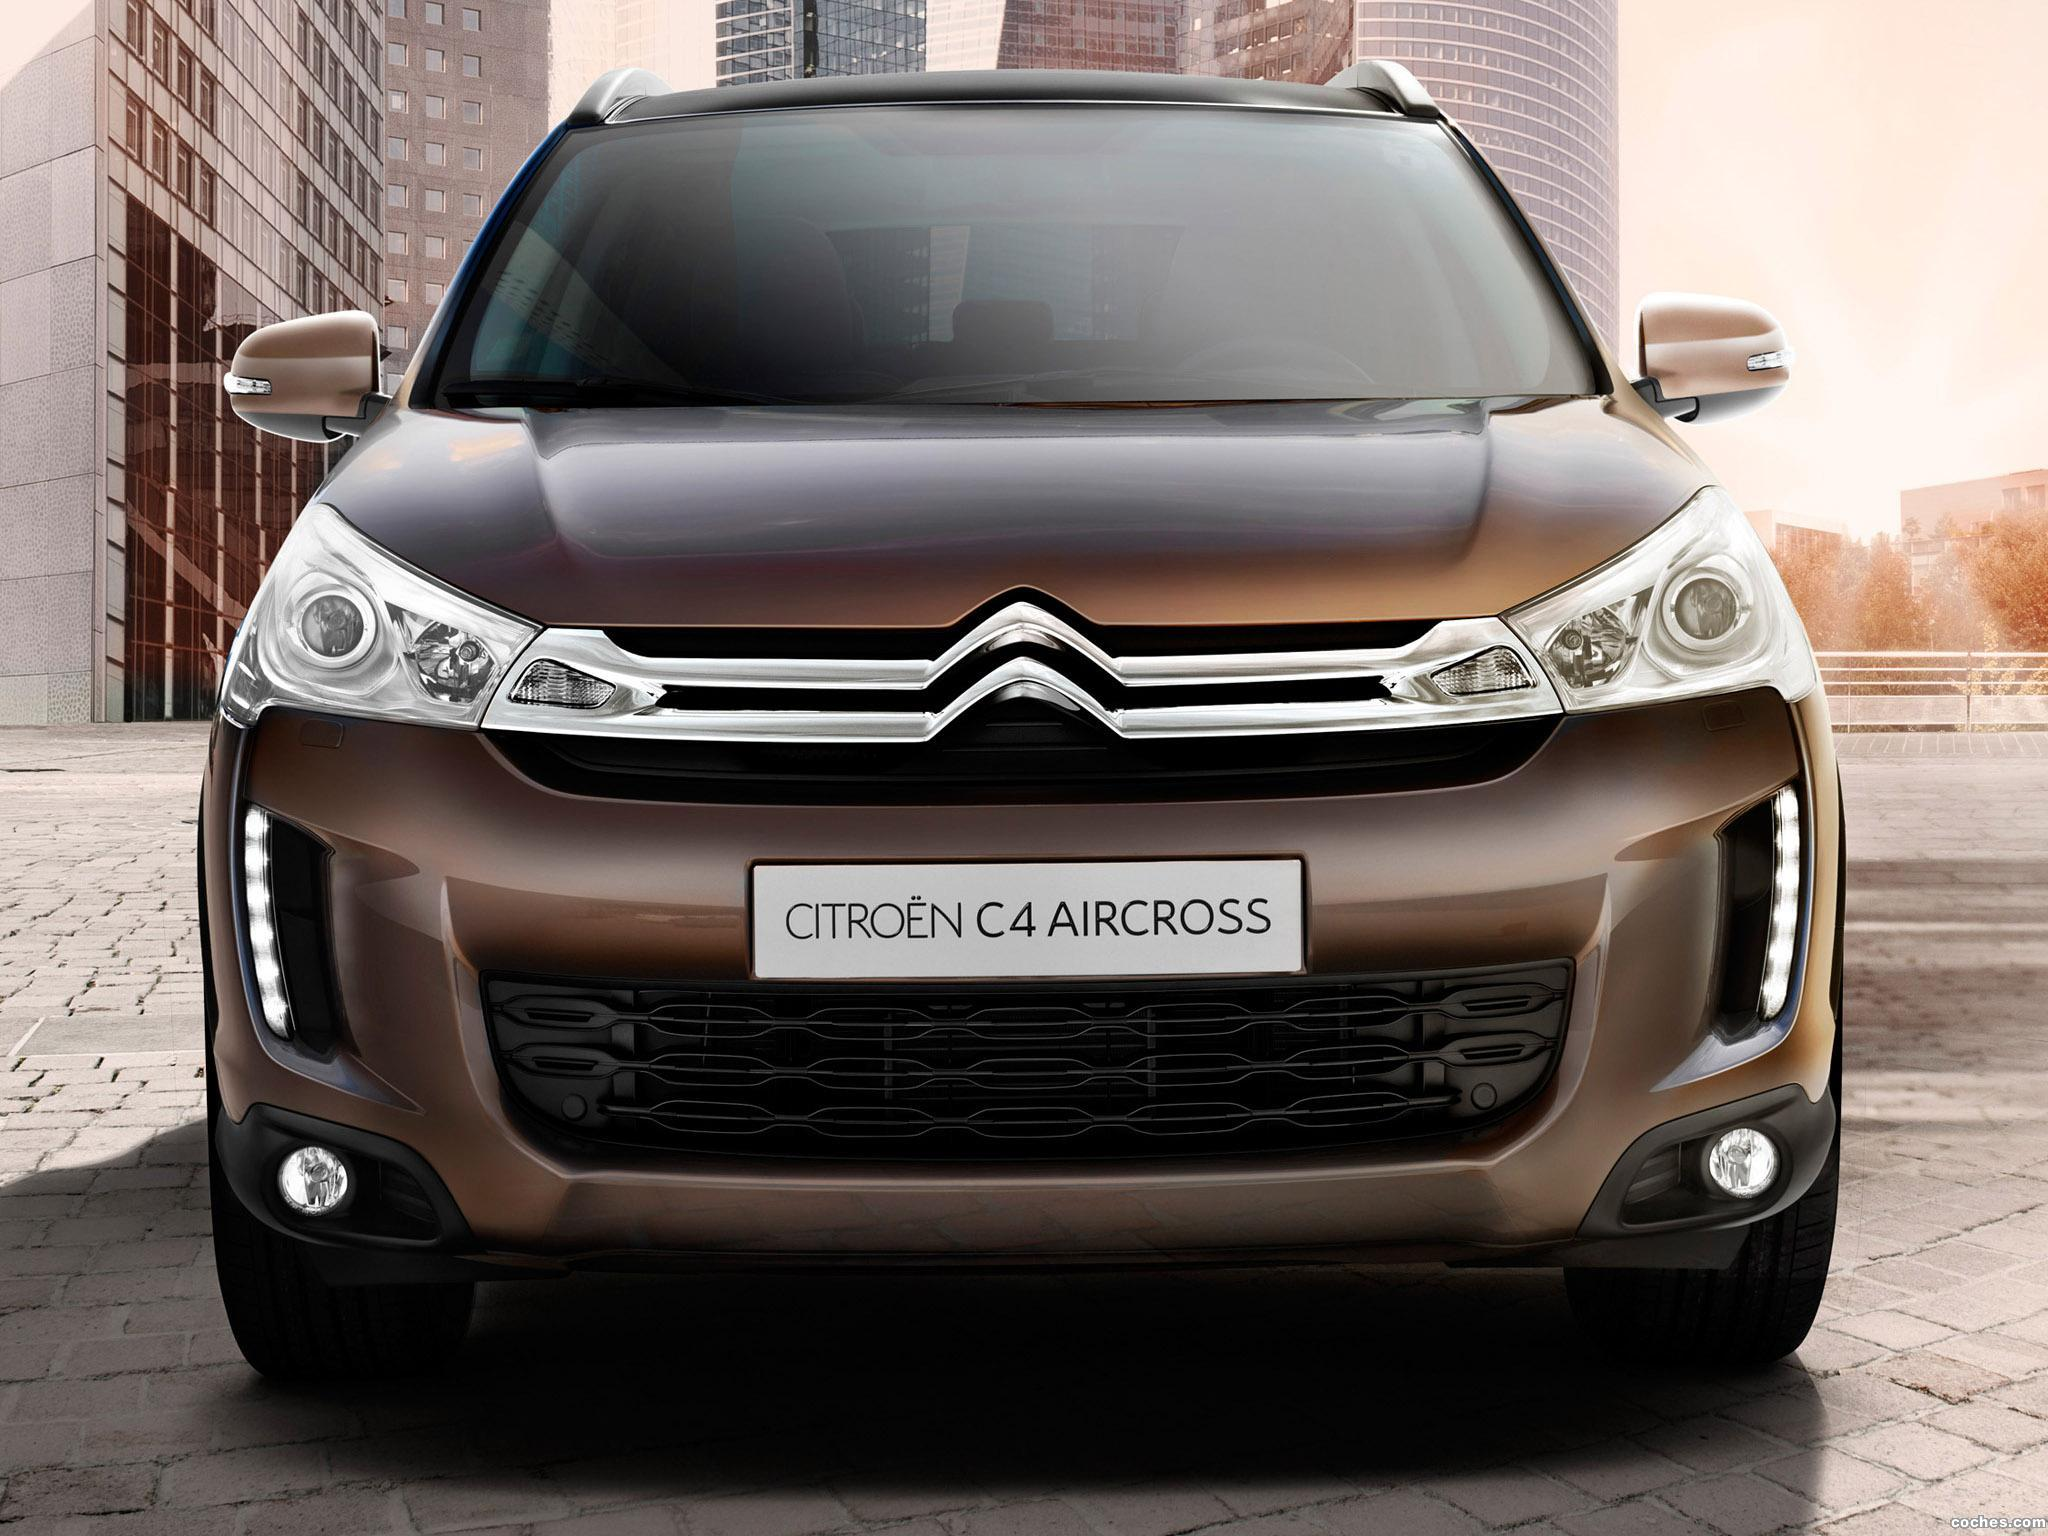 fotos de citroen c4 aircross 2011 foto 1. Black Bedroom Furniture Sets. Home Design Ideas